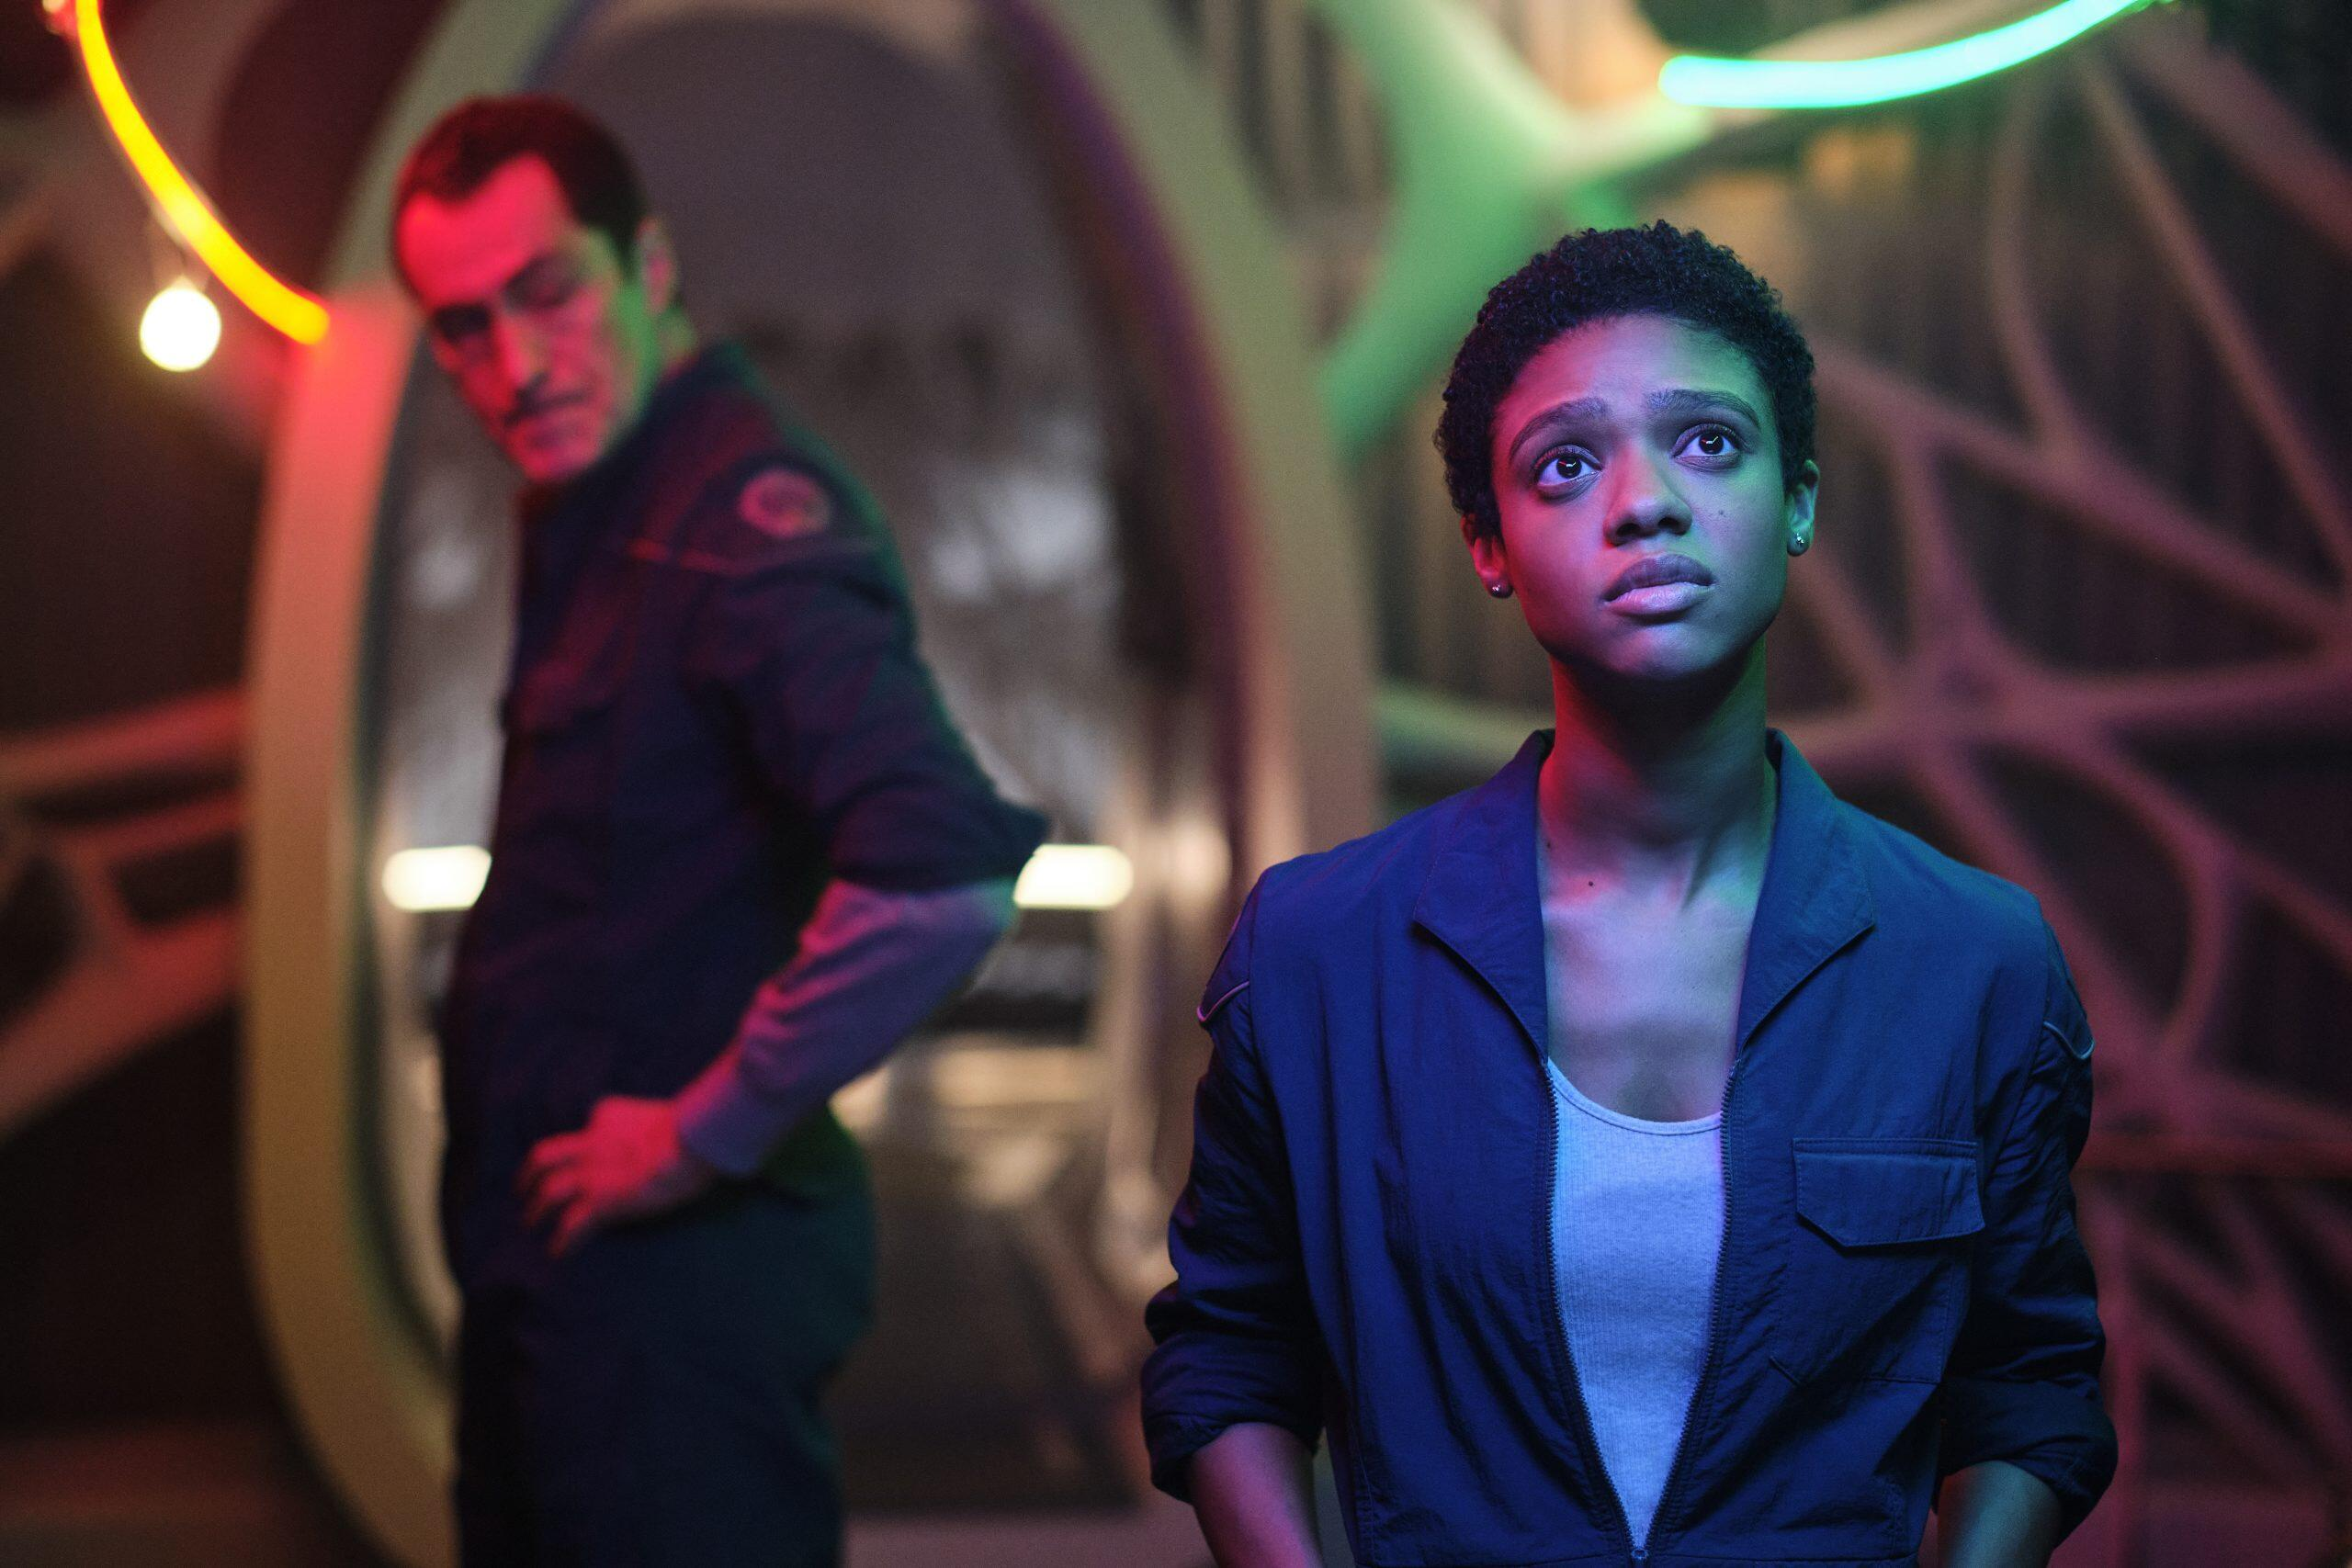 Midnight Sky star Tiffany Boone benefited from George Clooney's space film  expertise - CNET